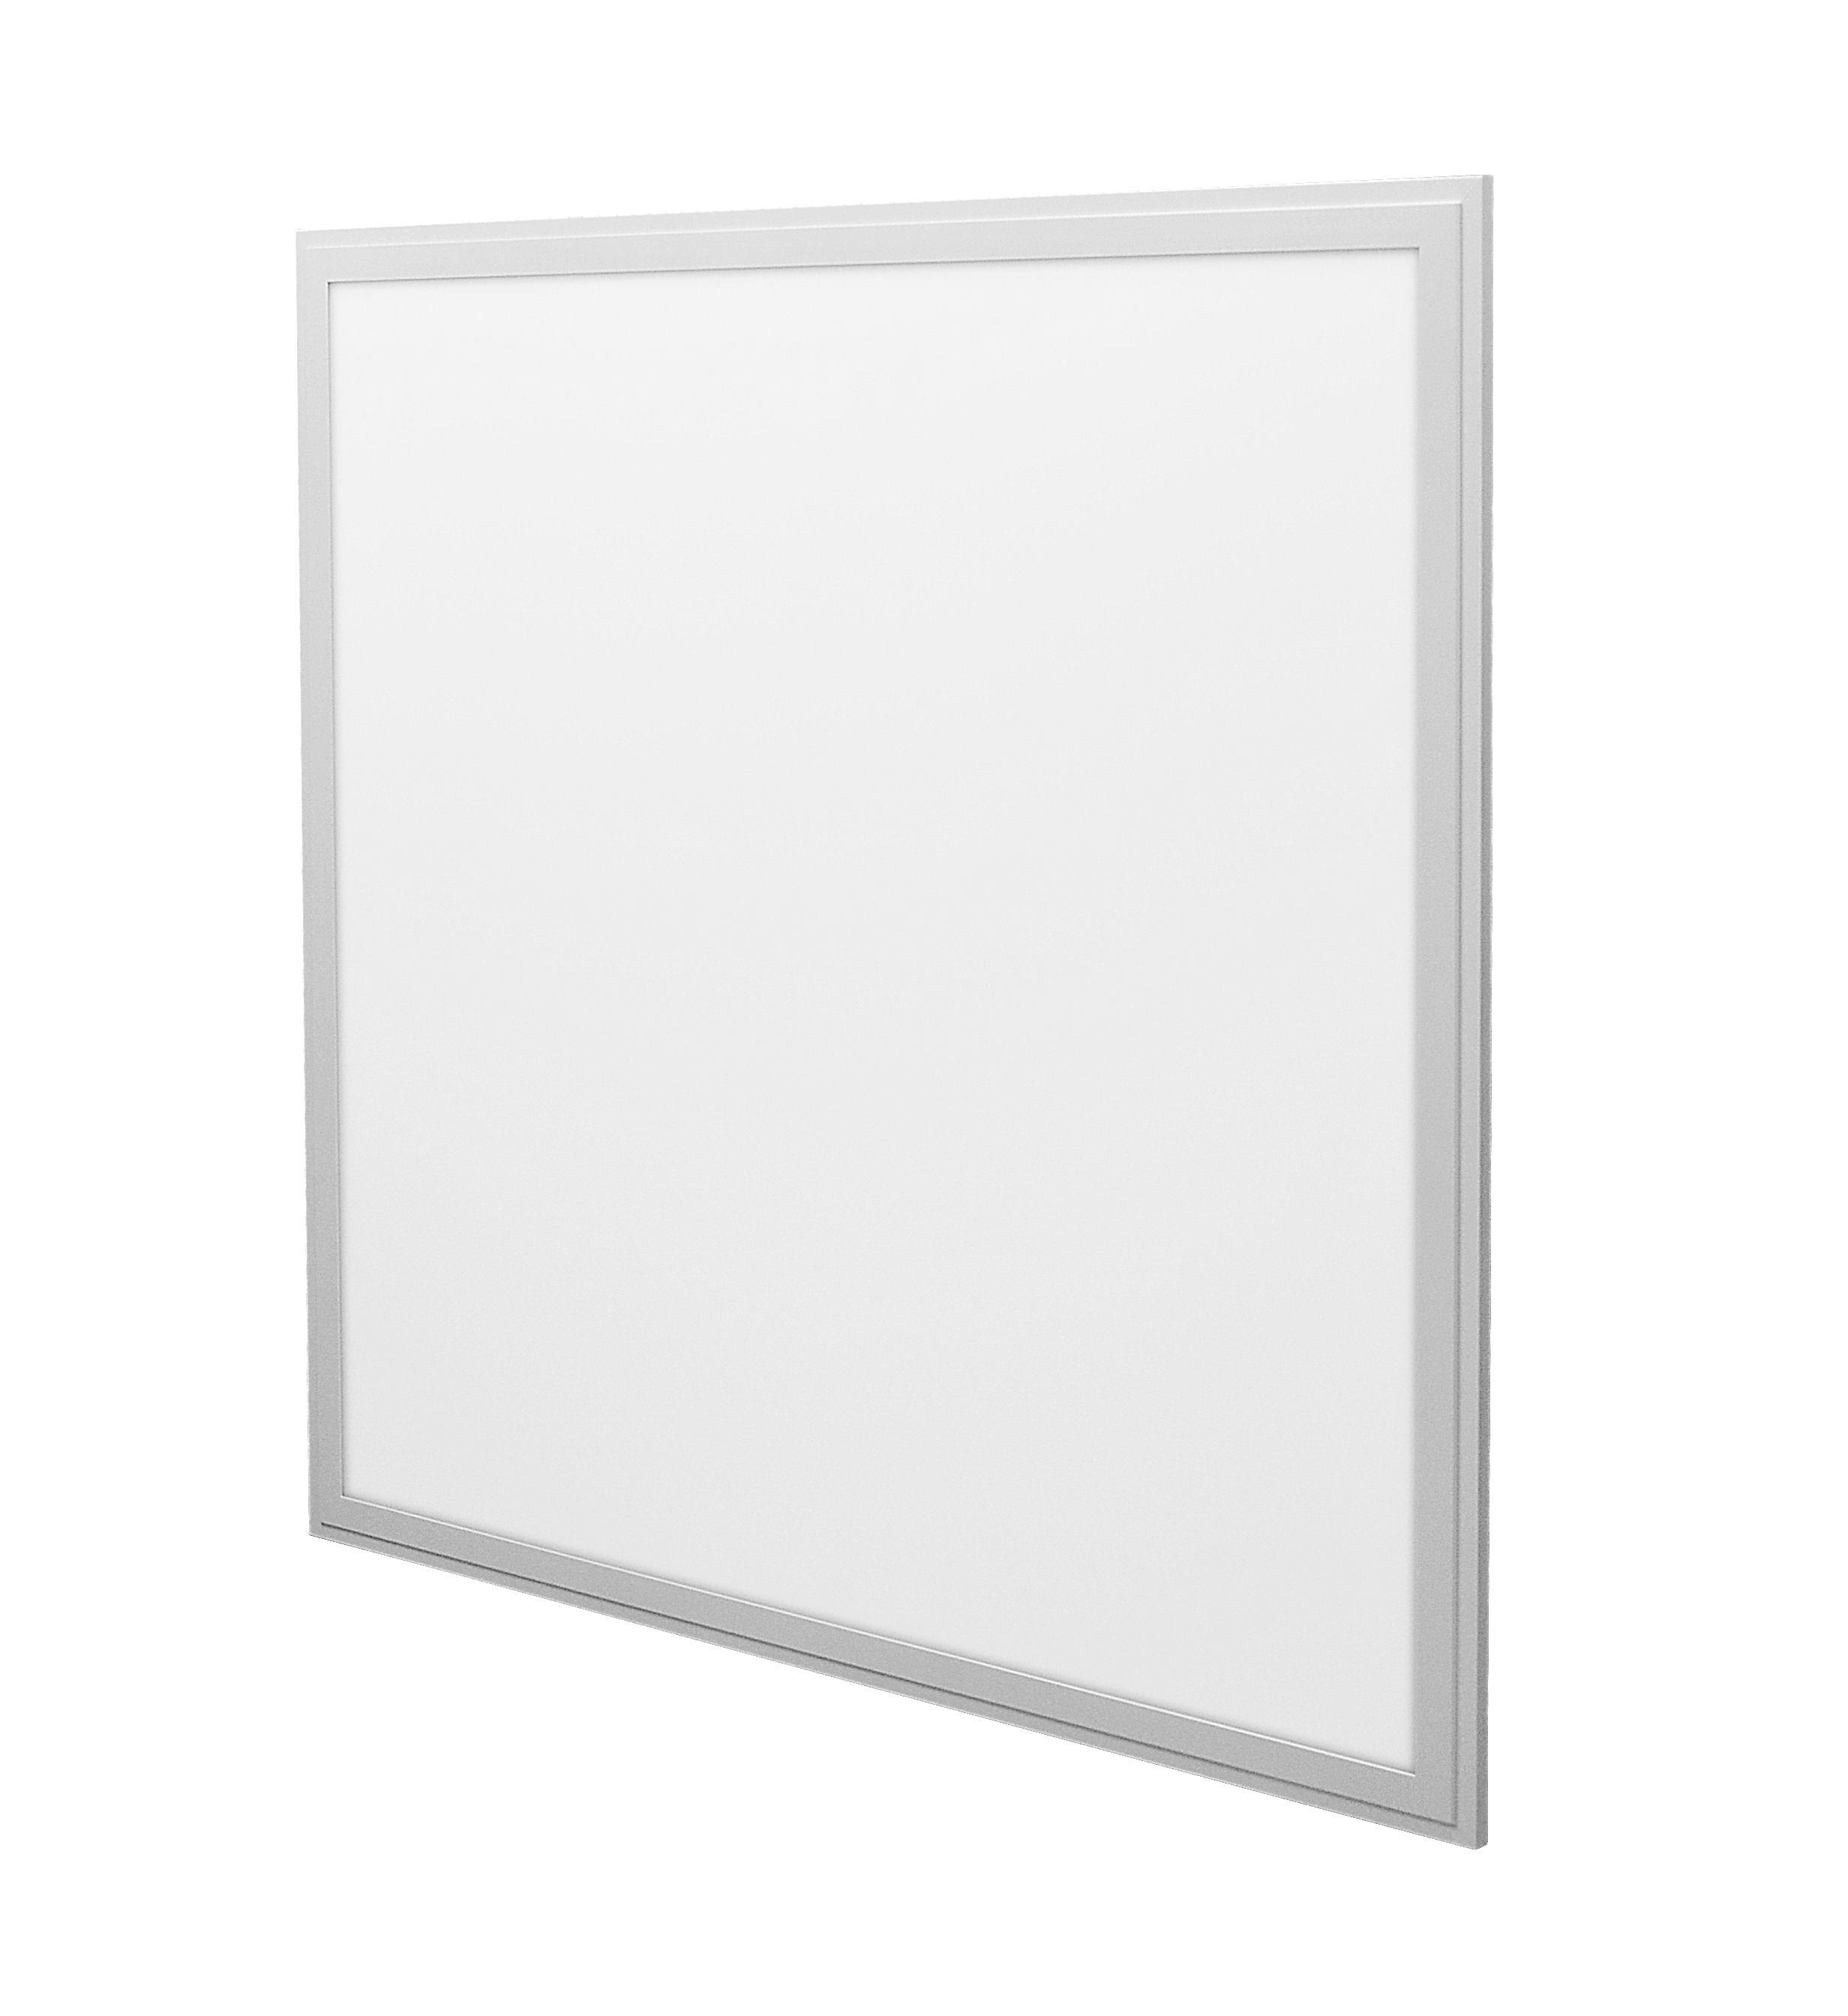 Dolight LED Panel lens flat panel led lights suppliers for offices-1